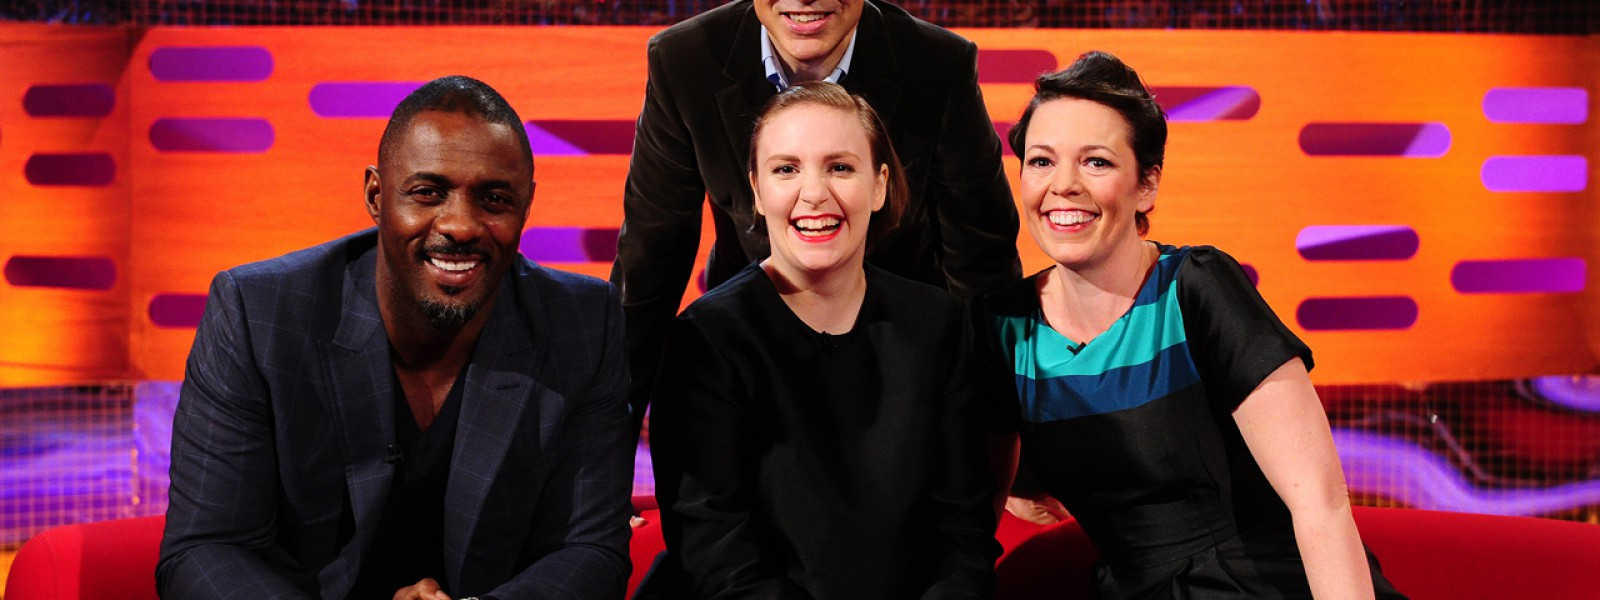 the-graham-norton-show-idris-lena-3